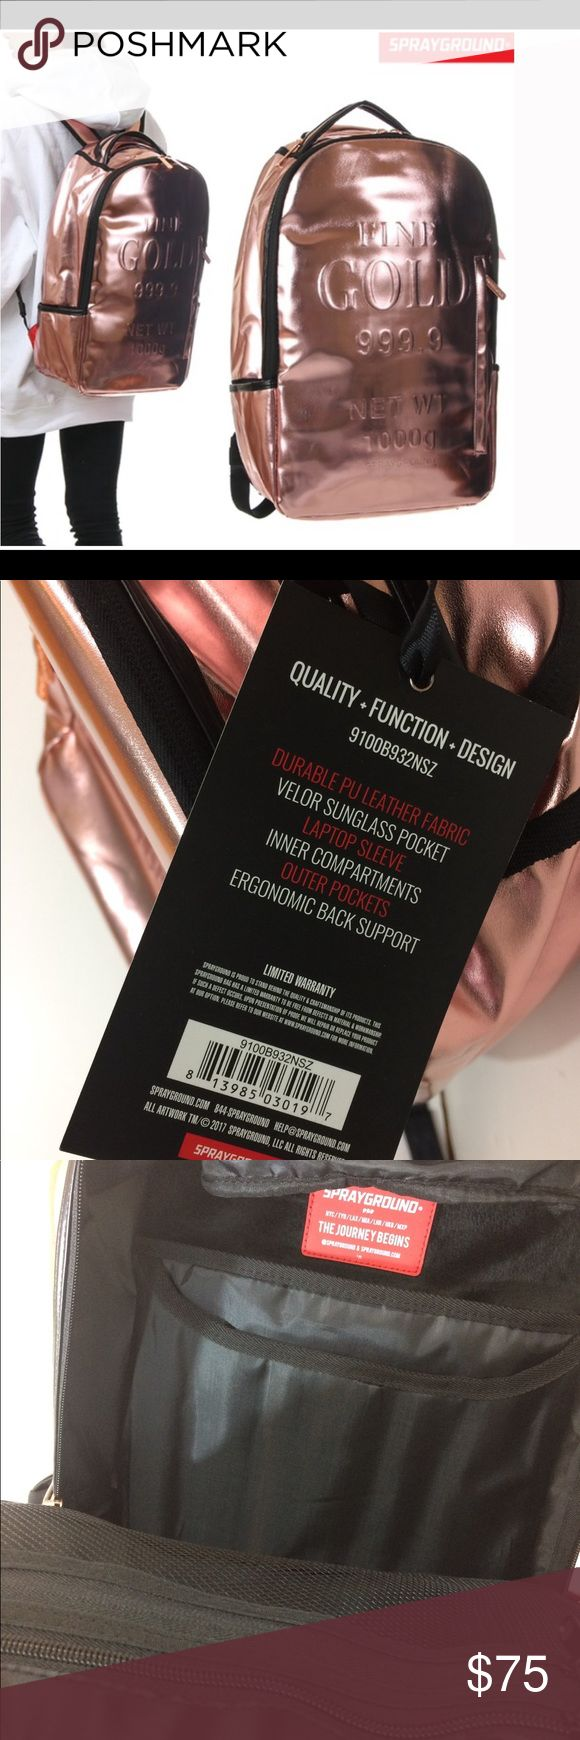 🆕LISTING Sprayground Rose Gold Backpack NWT Shinny Rose Gold backpack. Interior has separate laptop compartment. Mesh organizer pocket. Exterior has side zipper pockets, separate velour sunglass compartment. and more. Please see pickup for more description and measurements. Bundle it & I'll send you a private offer. Reasonable offer encouraged thru the offer button. Sprayground Bags Backpacks